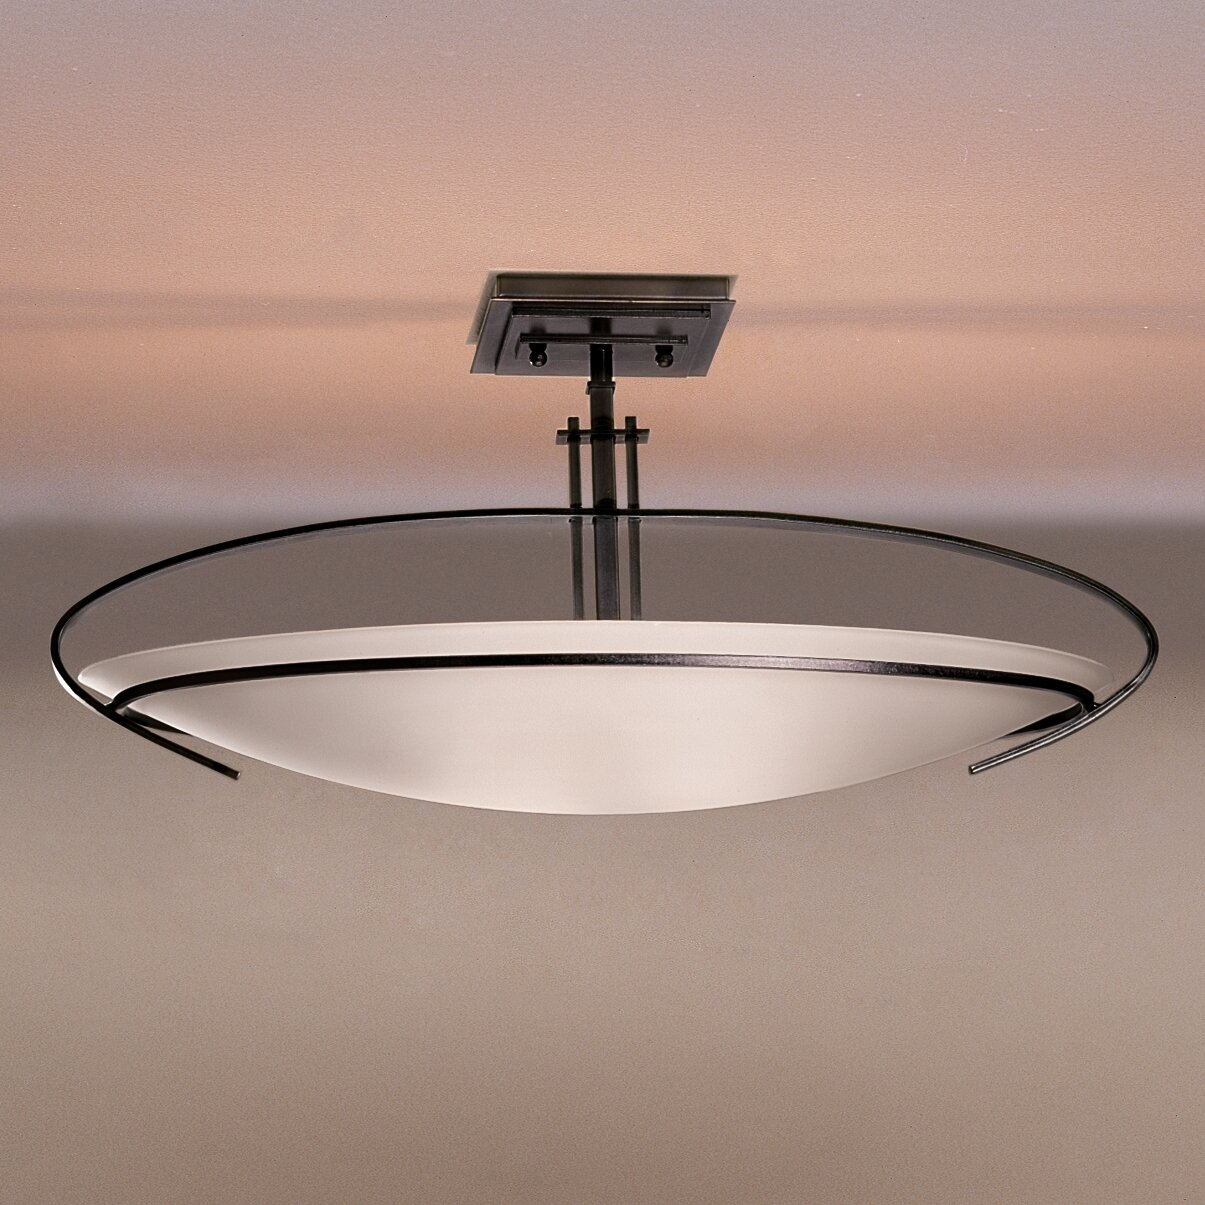 2 Lights Wall Mounted Cosmo Fixture Lamp Lighting with Brushed Steel /& Glass